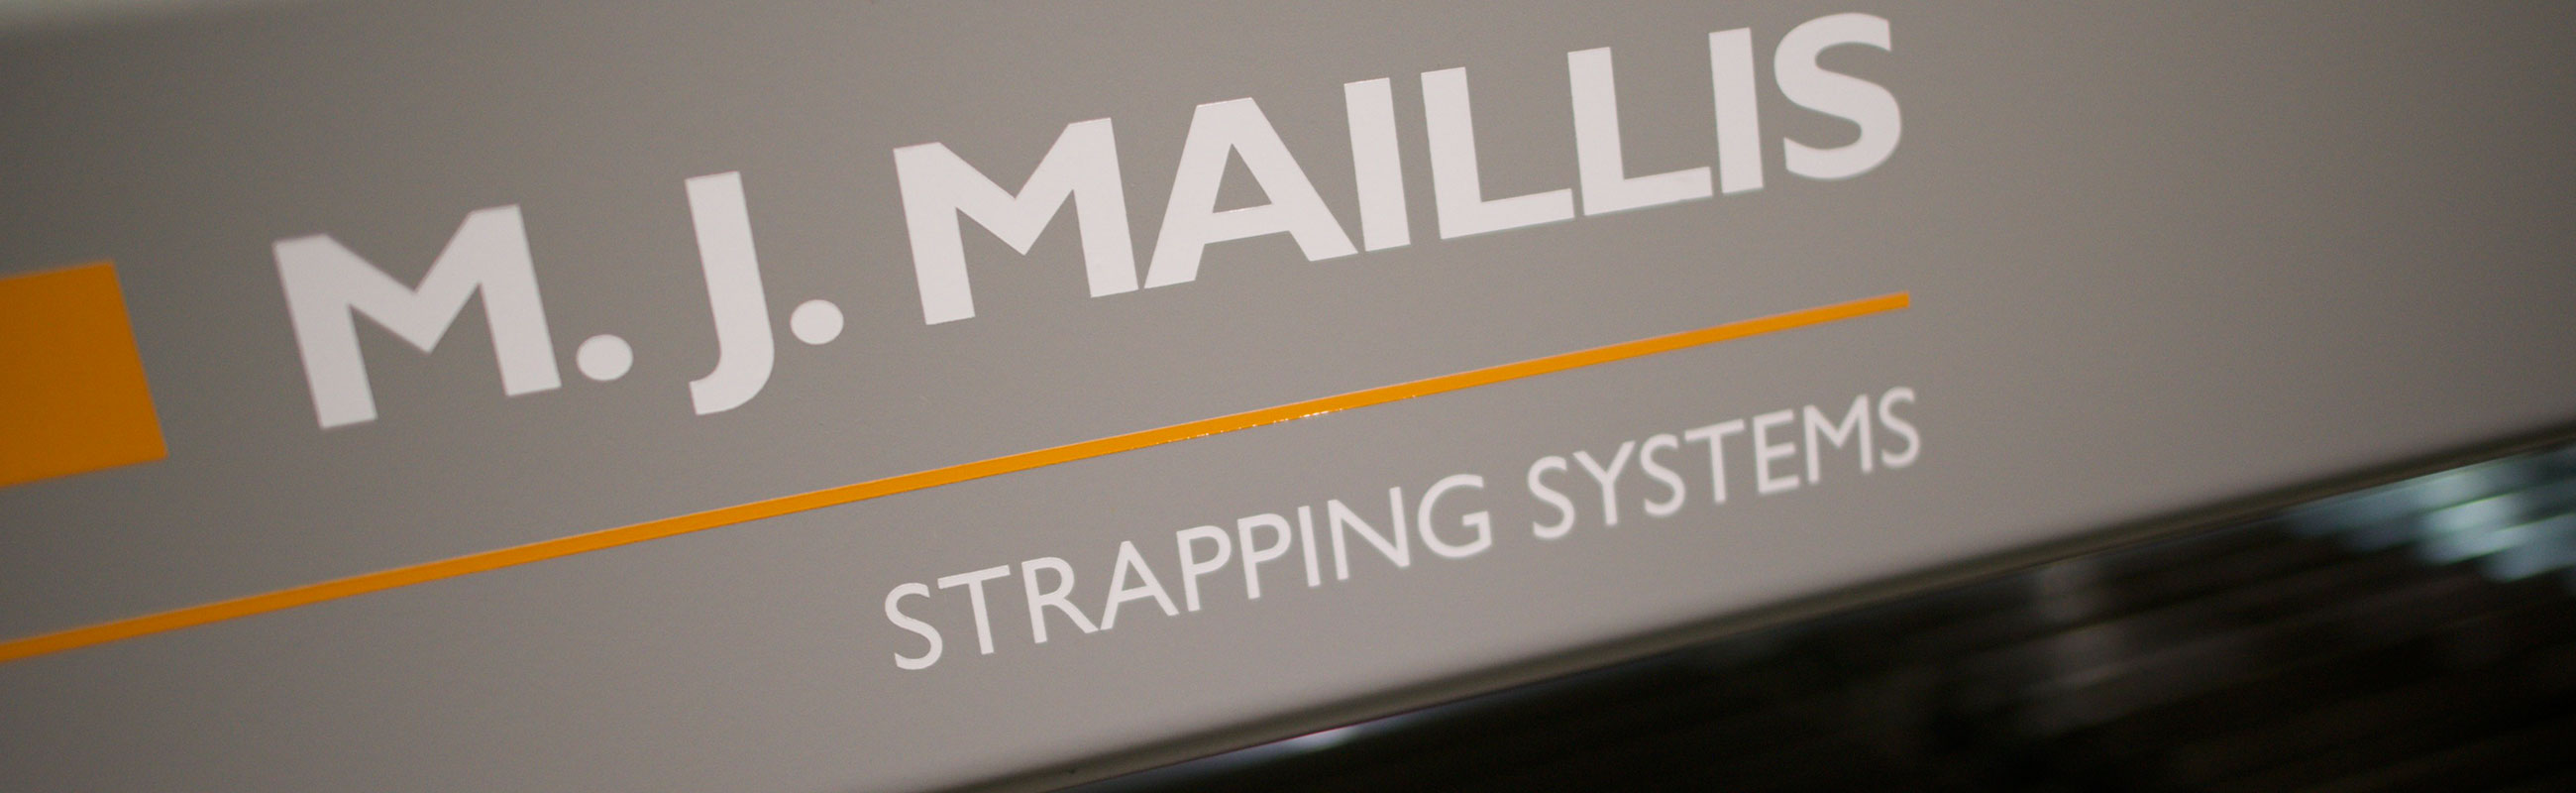 Mj maillis automatic strapping systems